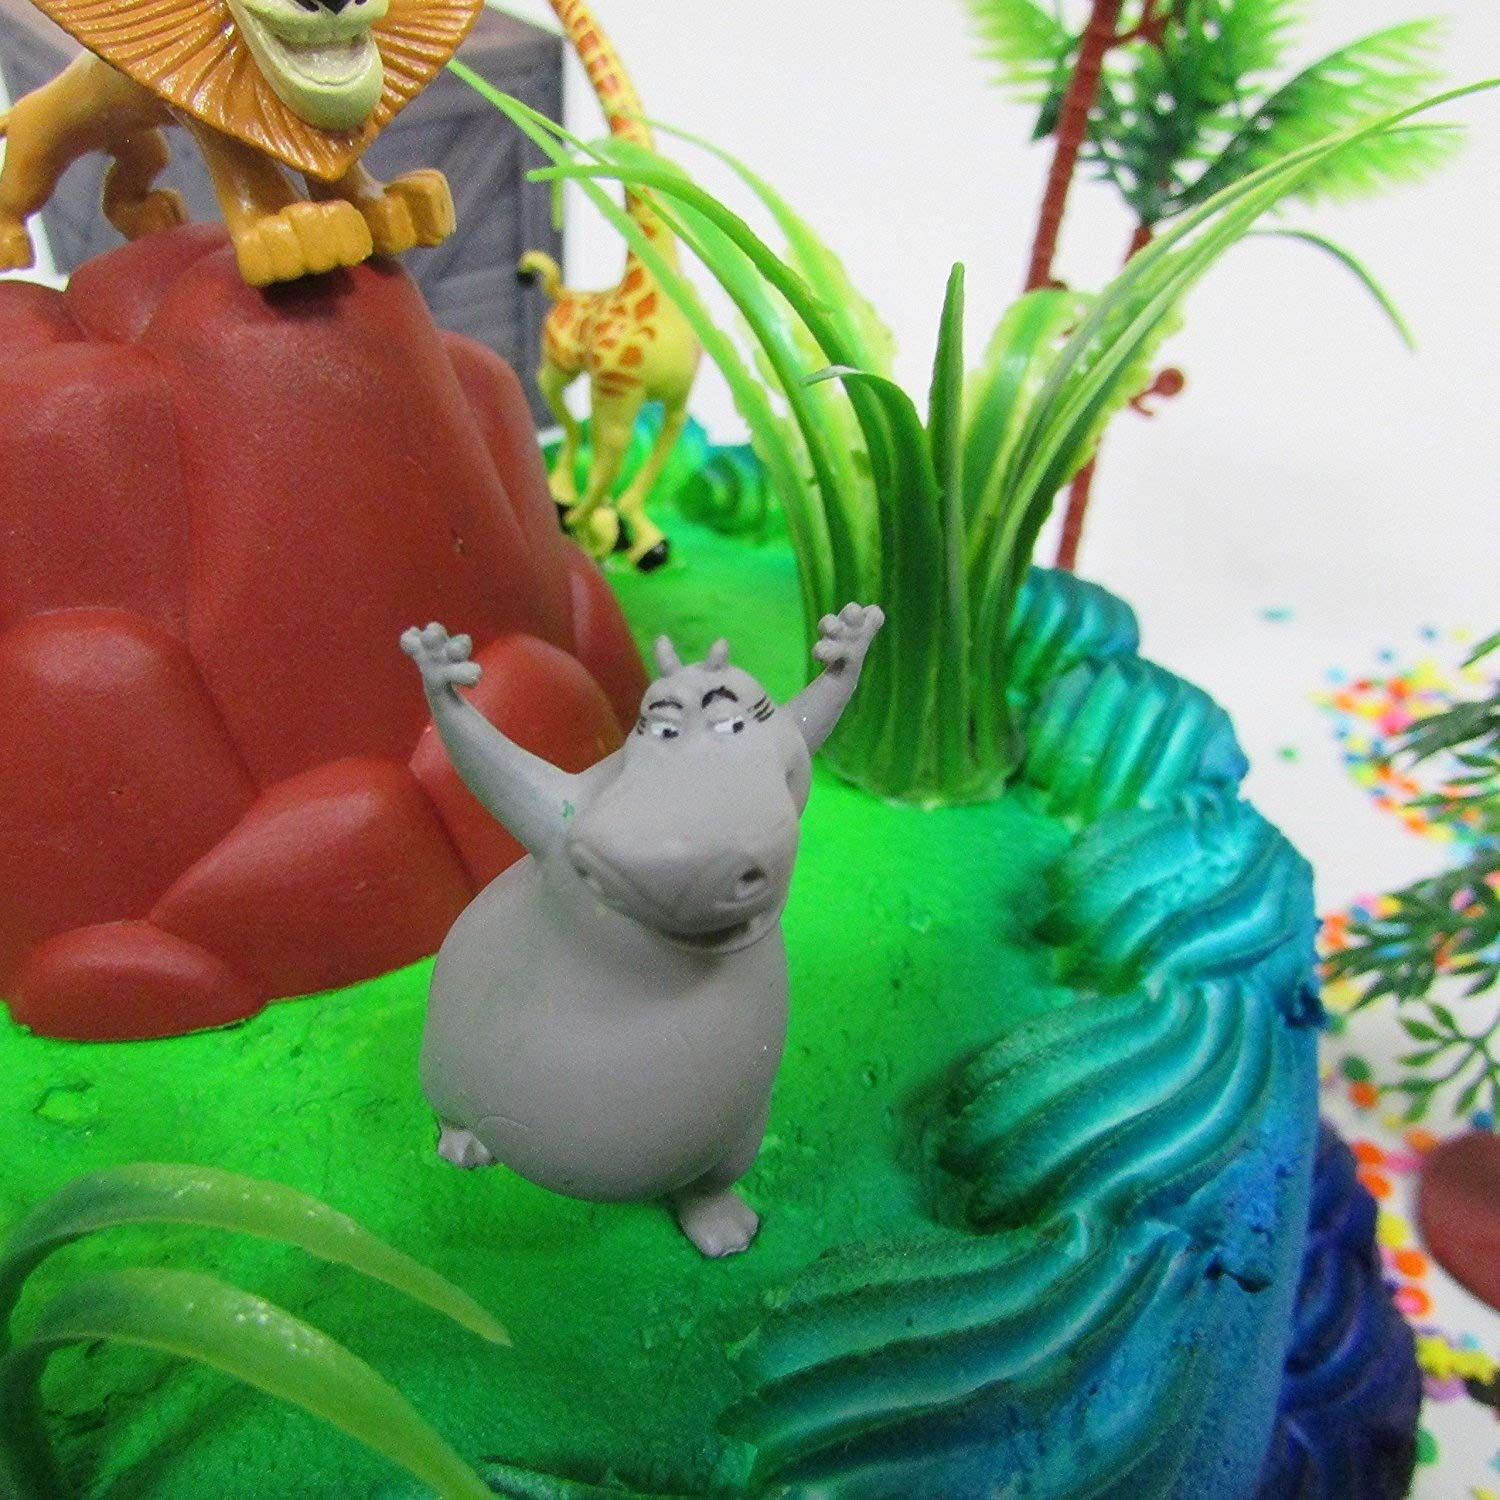 MADAGASCAR Birthday Cake Topper Set Featuring Alex and Friends Figures and Decorative Themed Accessories Cake Toppers